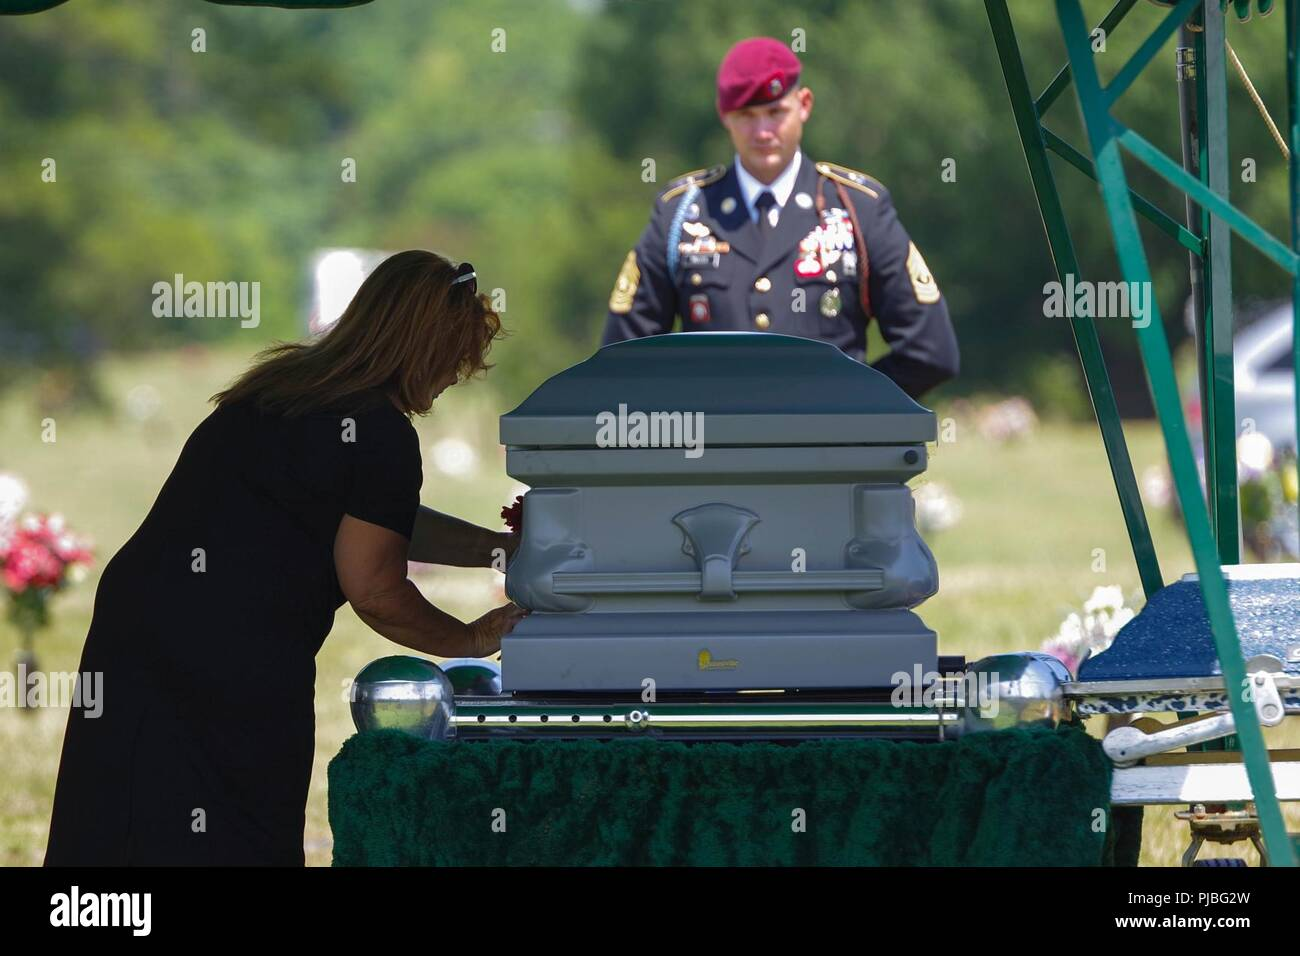 A family member of retired 1st Sgt. Harold Eatman, left, places a flower on his casket at Sharon Memorial Park in Charlotte, North Carolina on July 11 as 1st Sgt. James Miller, right, of Company, B, 2nd Battalion, 505th Parachute Infantry Regiment looks on.  Eatman was a member of the 505th PIR during World War II, making combat jumps into Sicily, Salerno, Normandy and Holland.  Eatman passed away earlier in July at the age of 102. Stock Photo